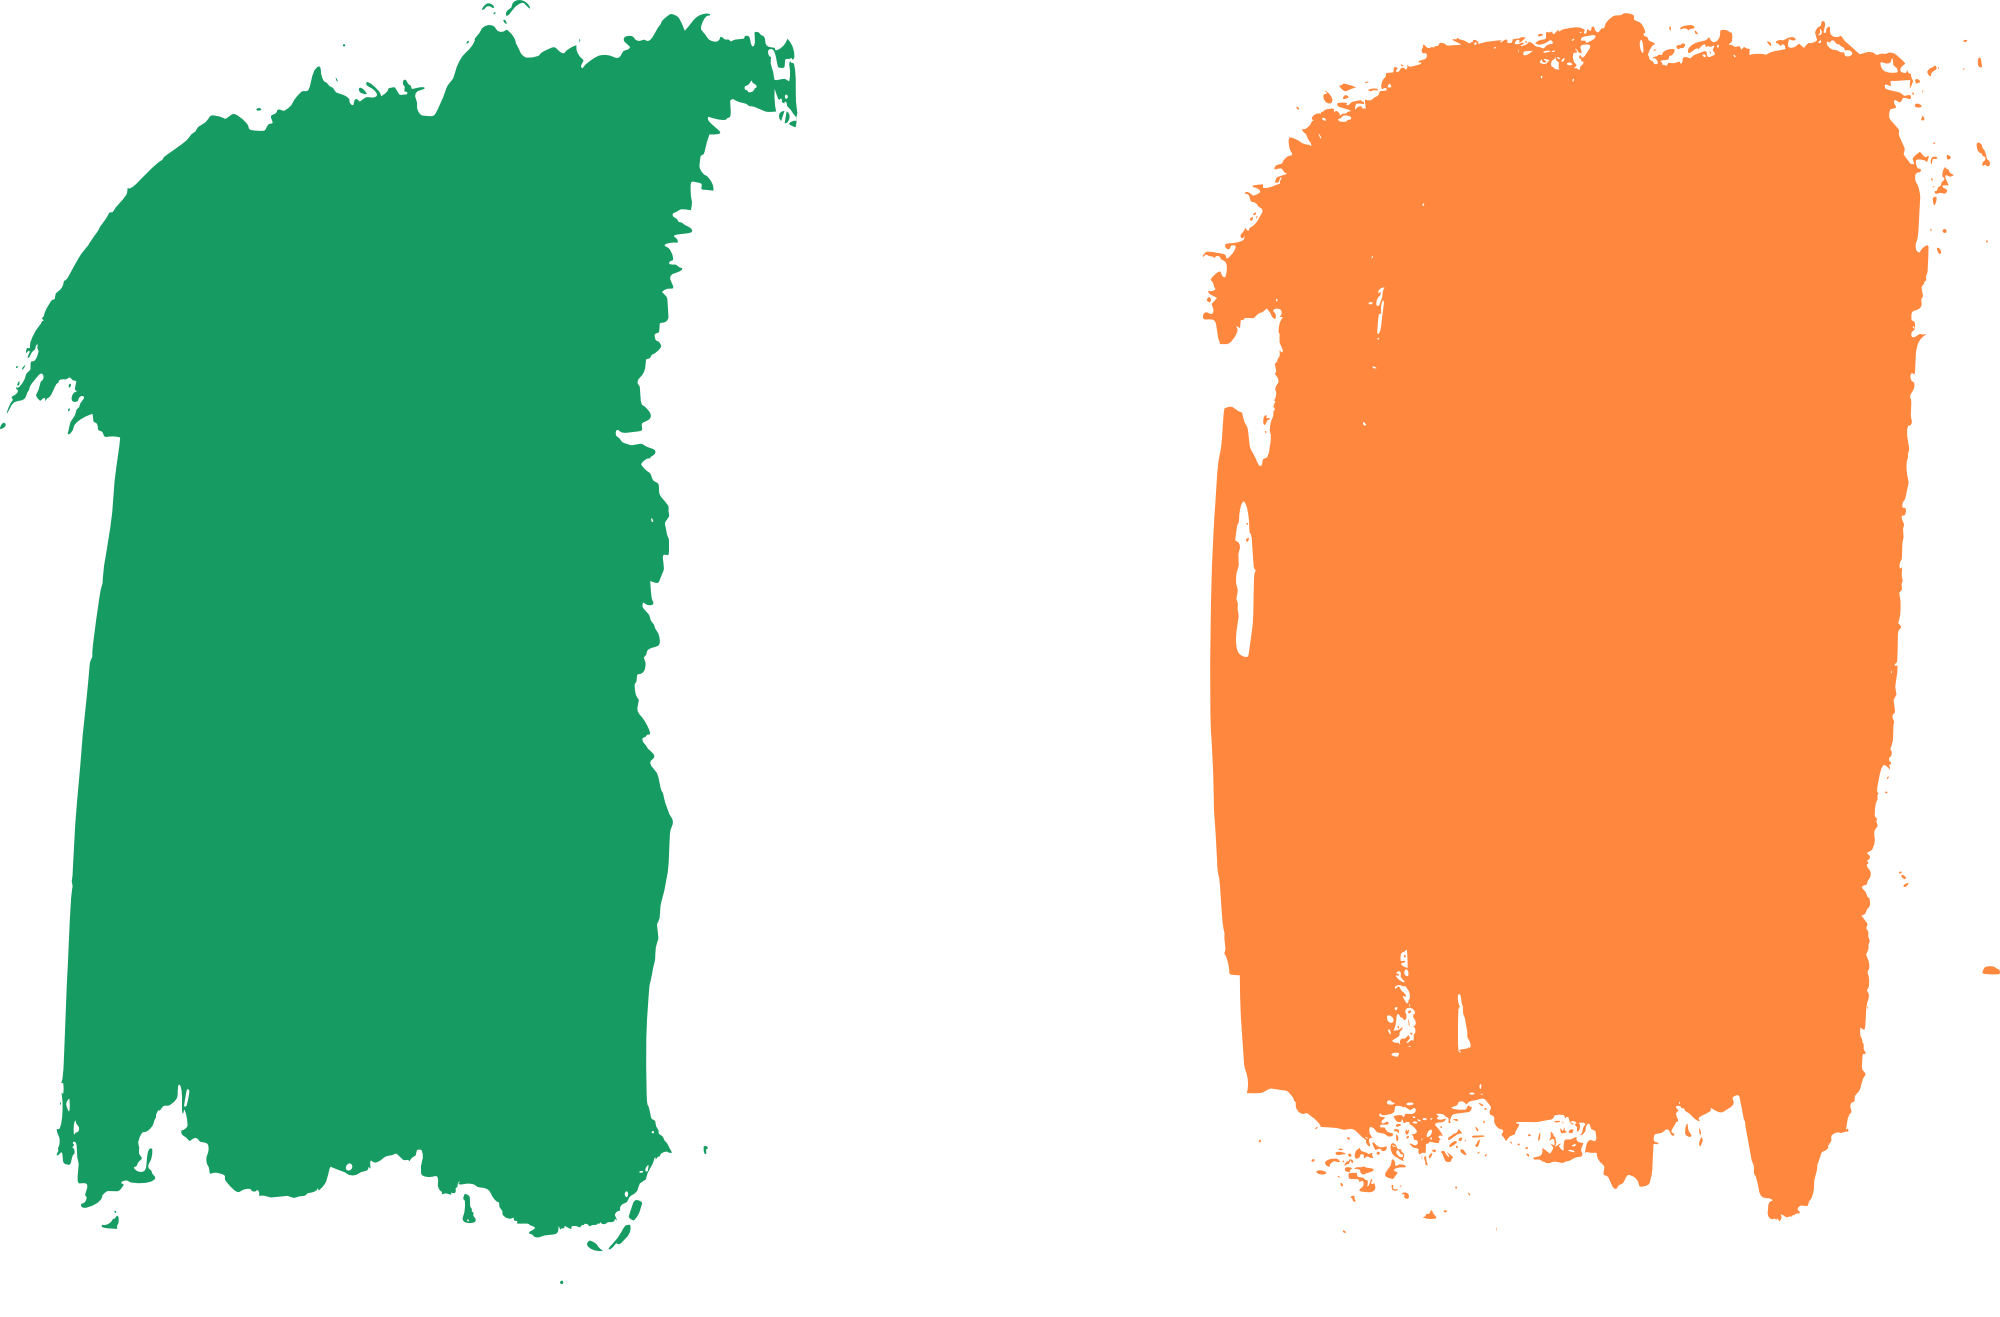 SURROGATE AND IVF PROGRAMS FOR IRISH COUPLES